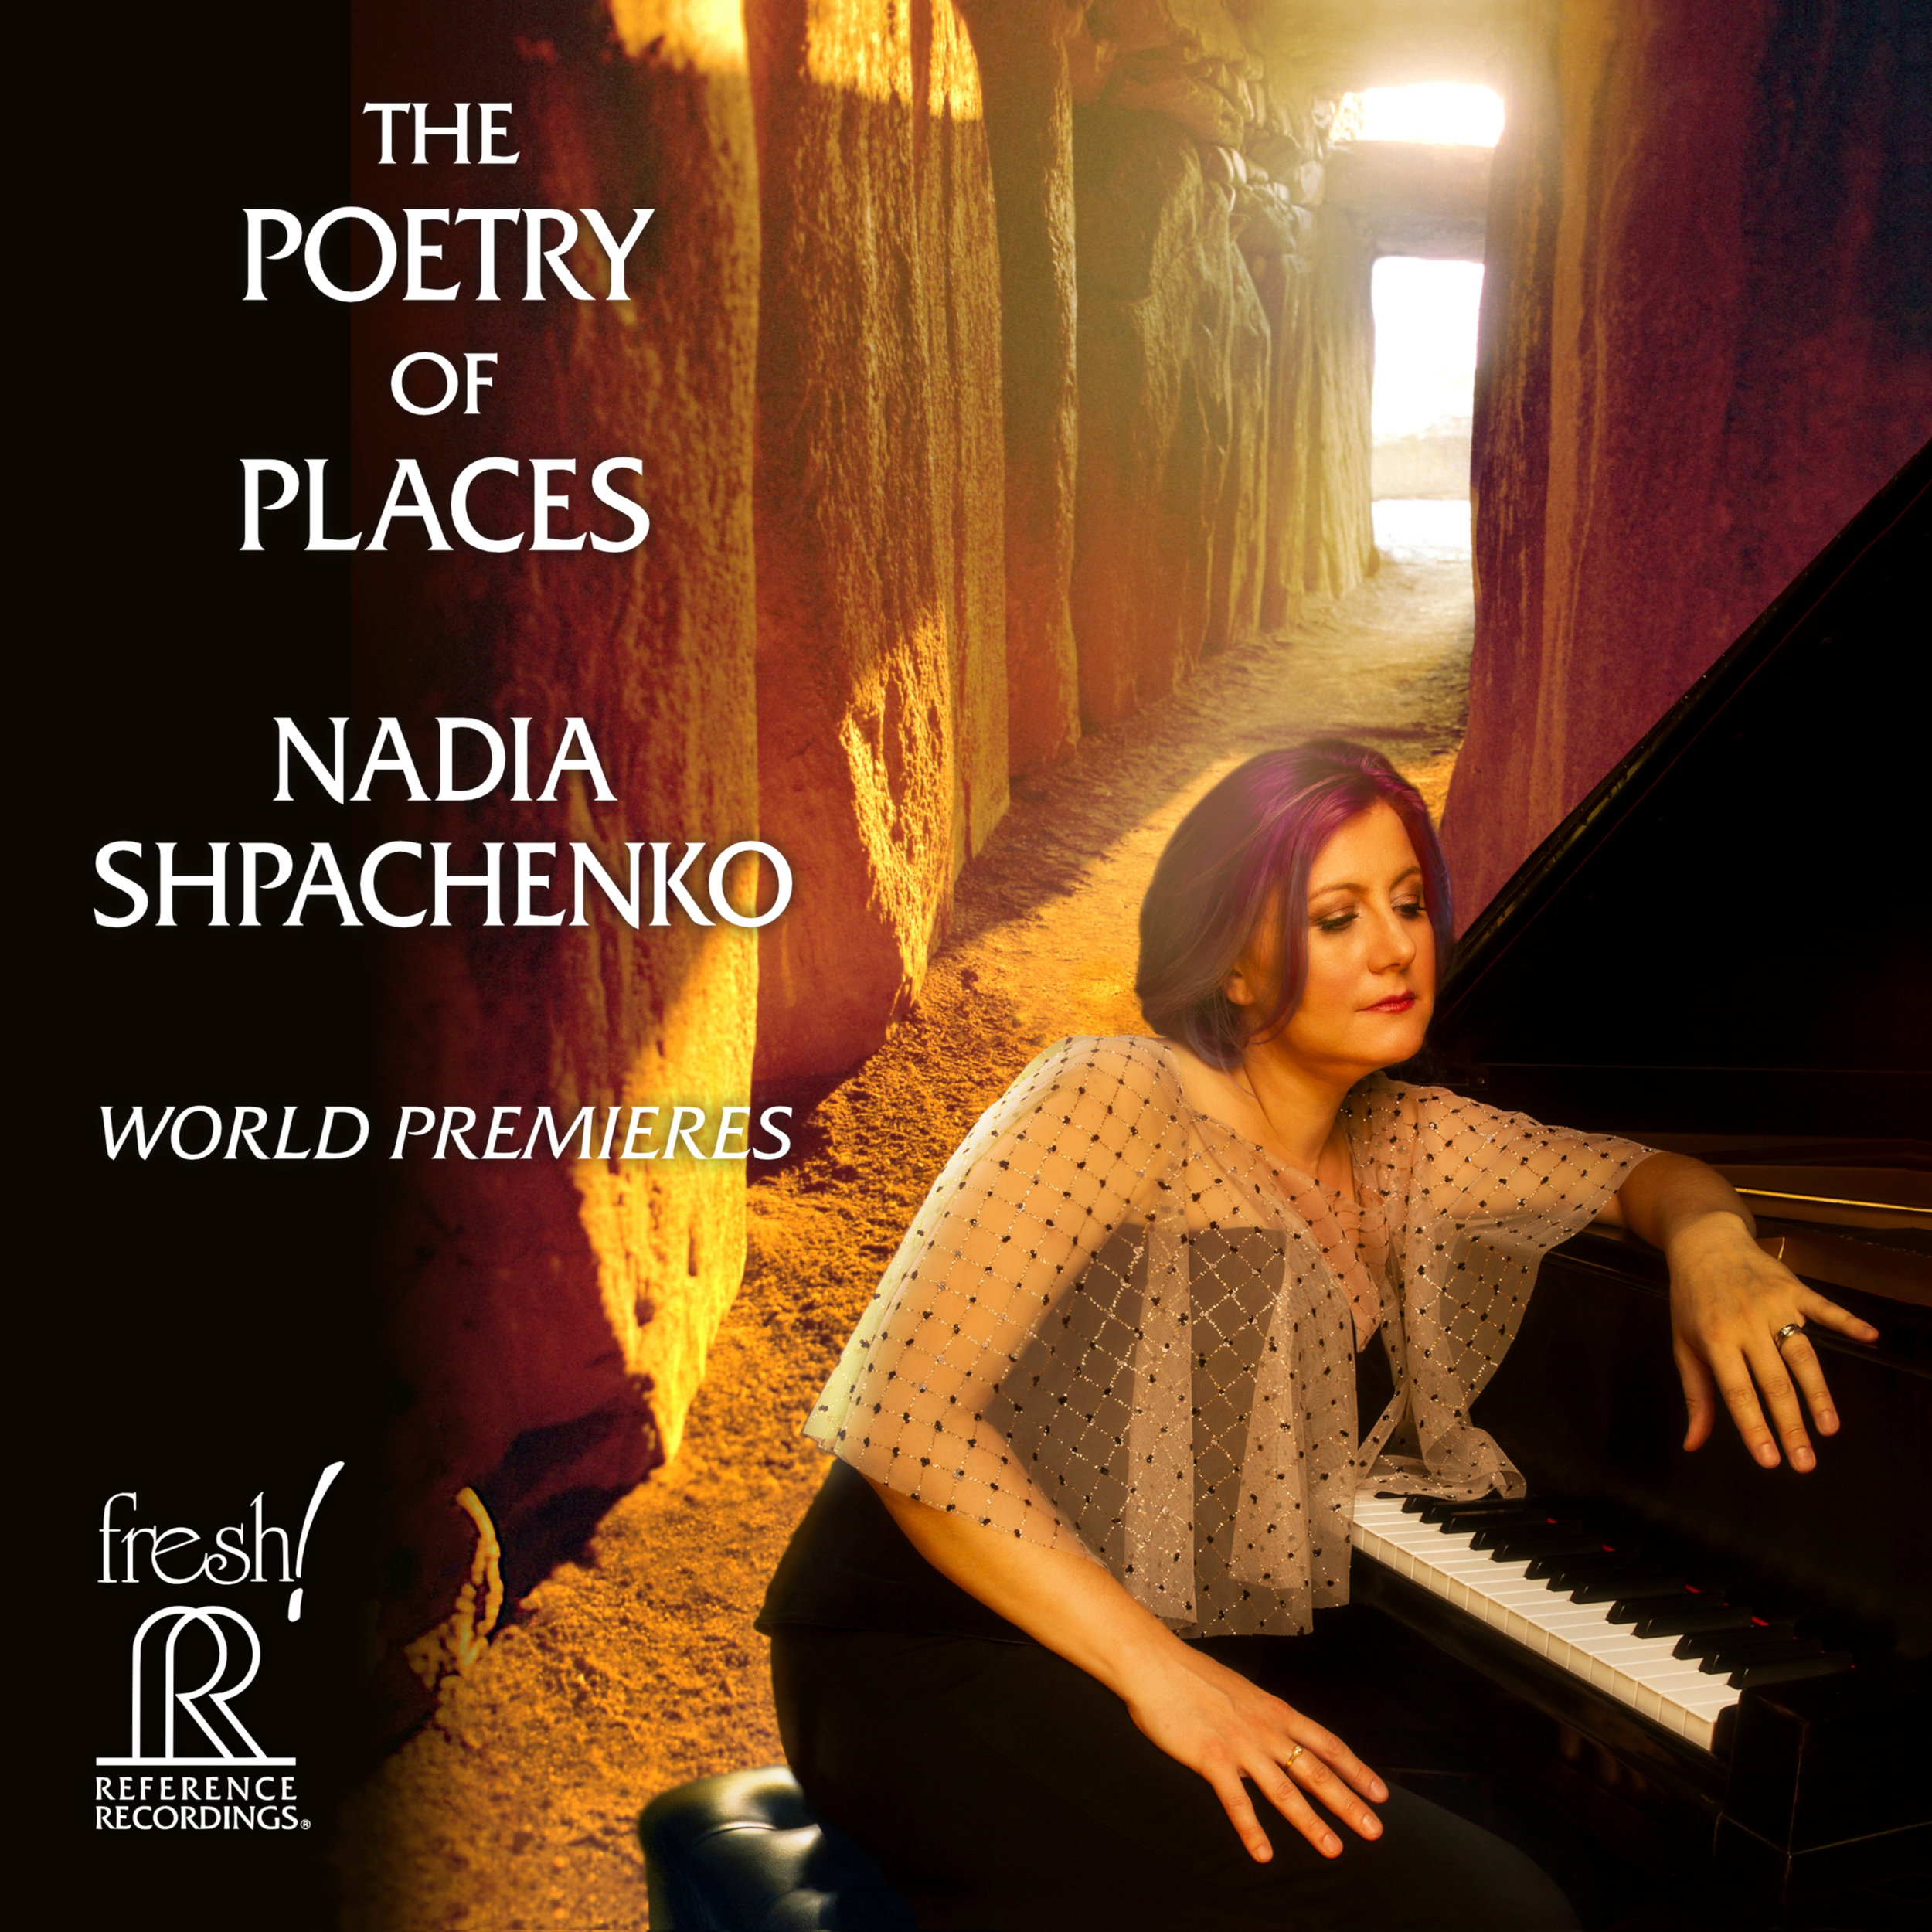 Nadia Shpachenko, piano: Poetry of Places. Includes ABK's  h.o.p.e.  for piano/toy piano/voice. Click image to purchase CD on Amazon (also available as MP3 album).